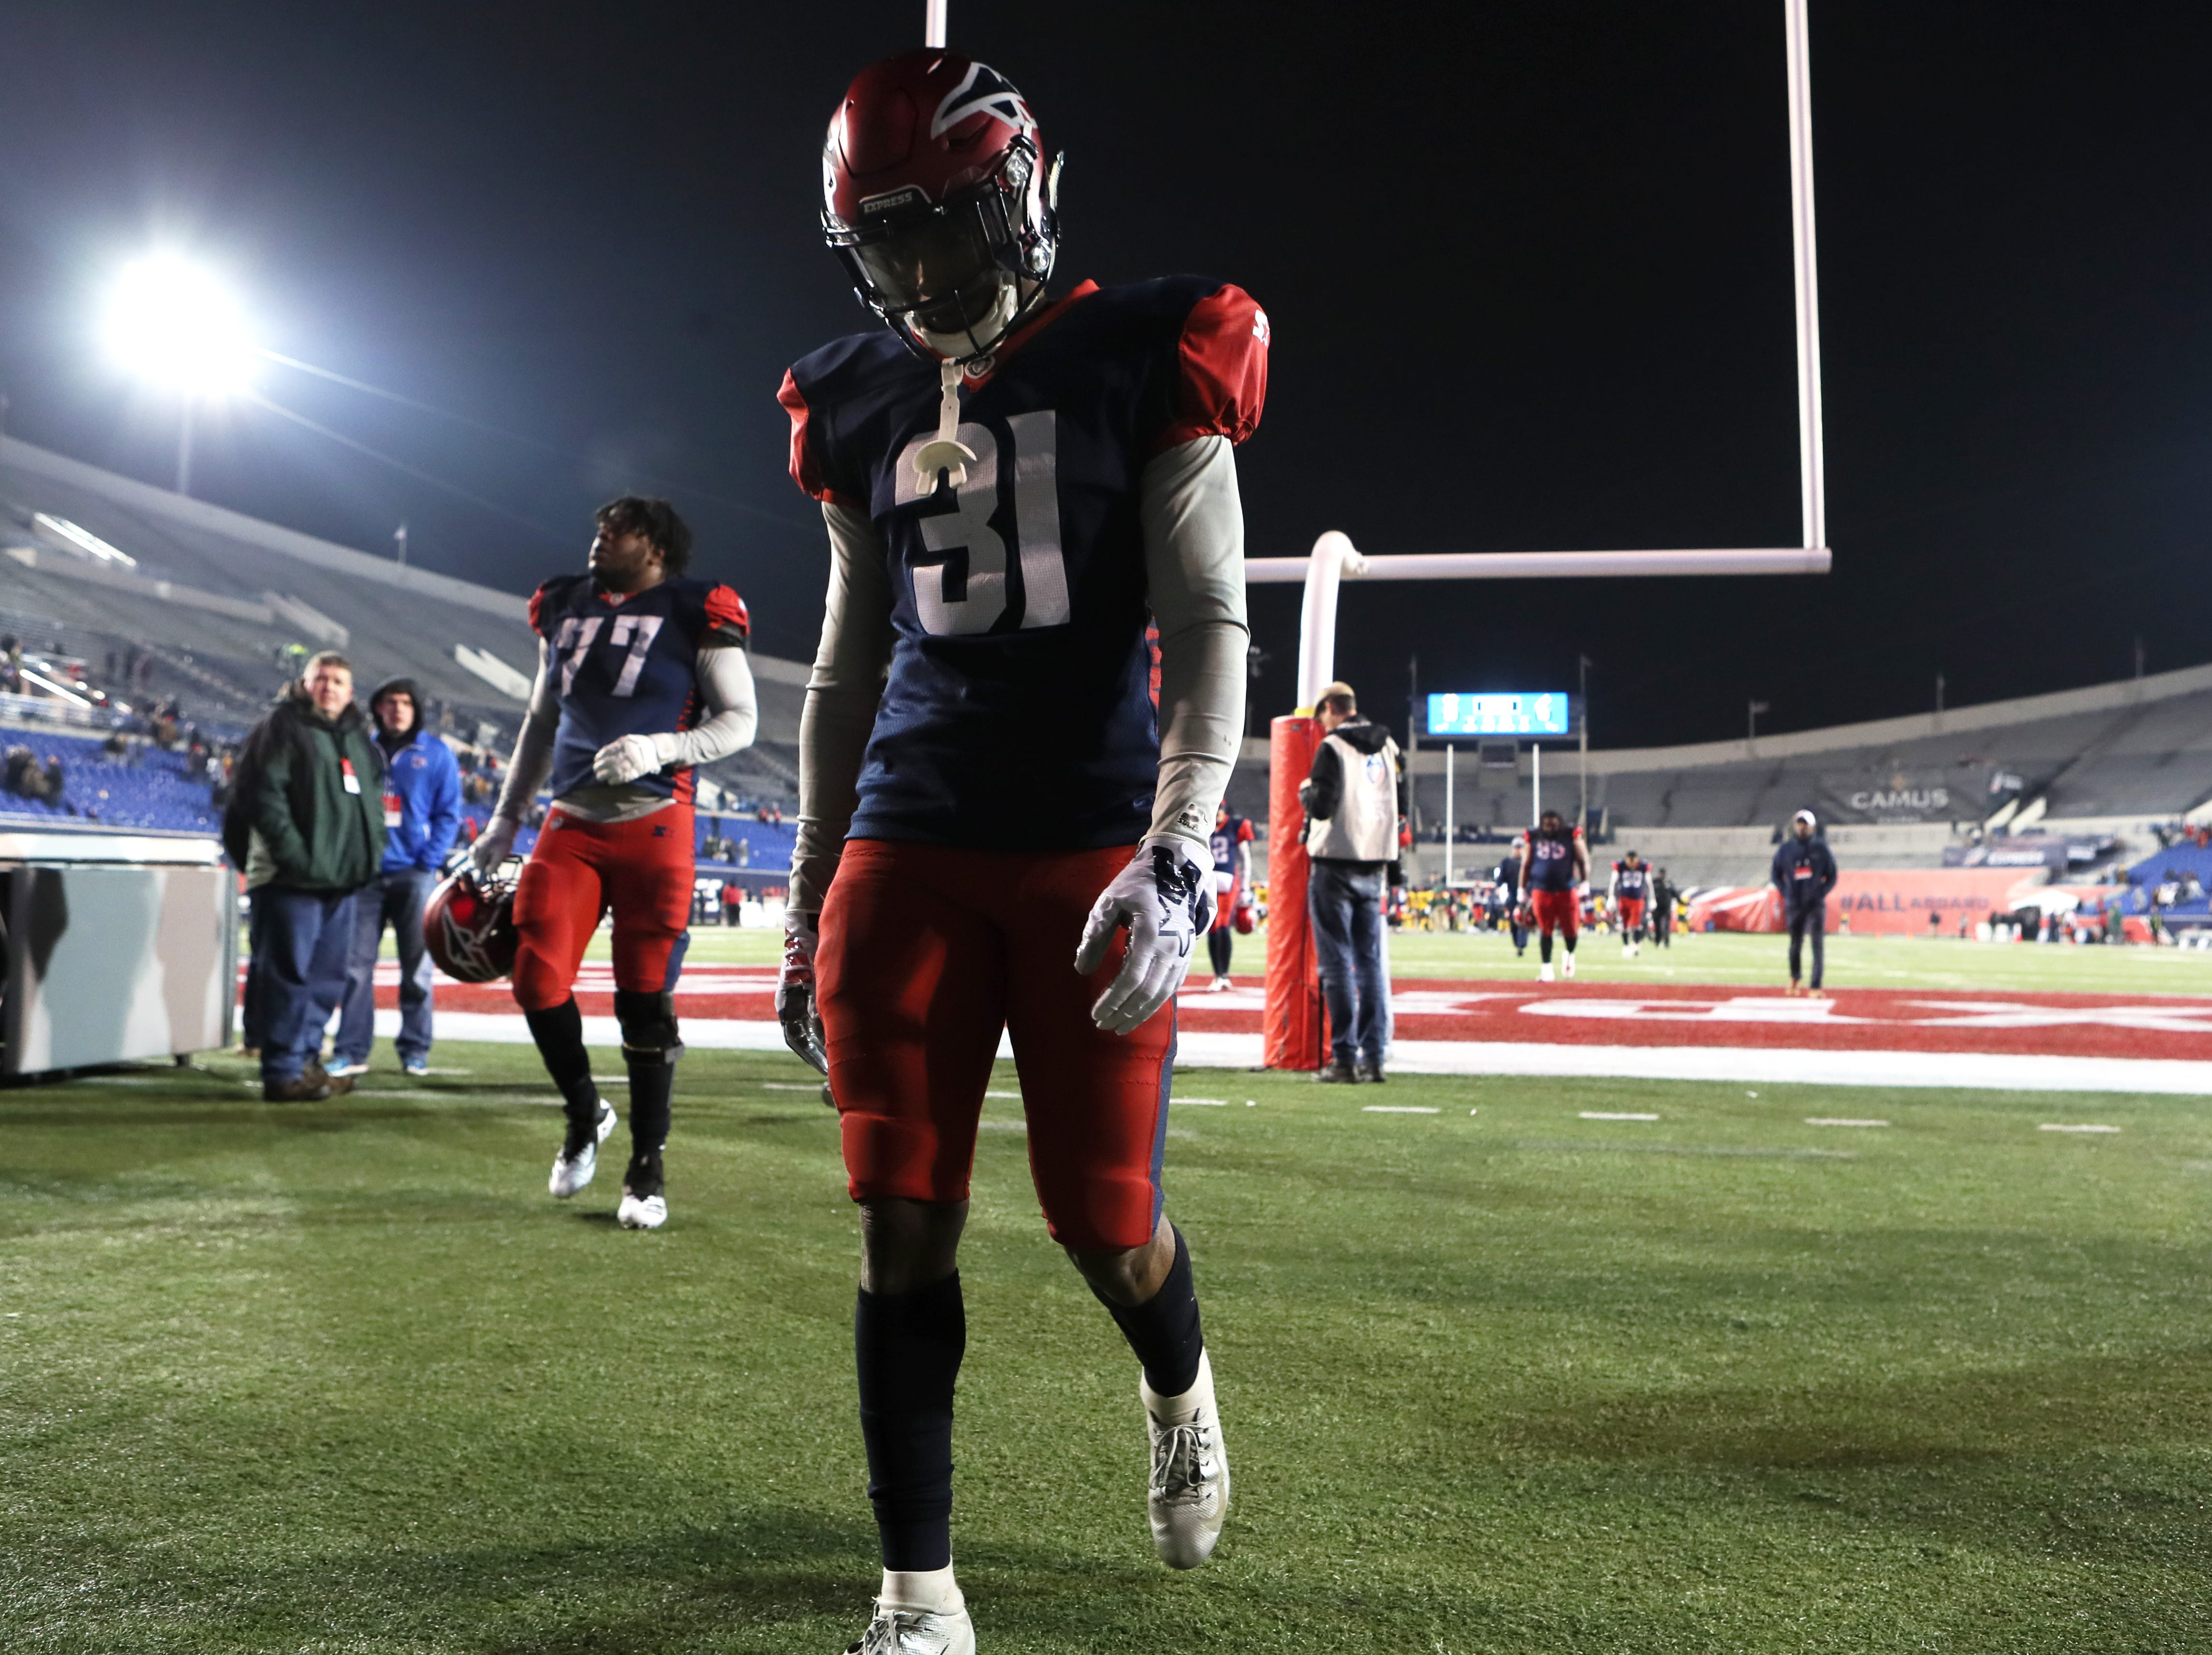 Memphis Express defensive back Jonathan Cook walks off the field after their 20-18 loss to the Arizona Hotshots at the Liberty Bowl on Saturday, Feb. 16, 2019.